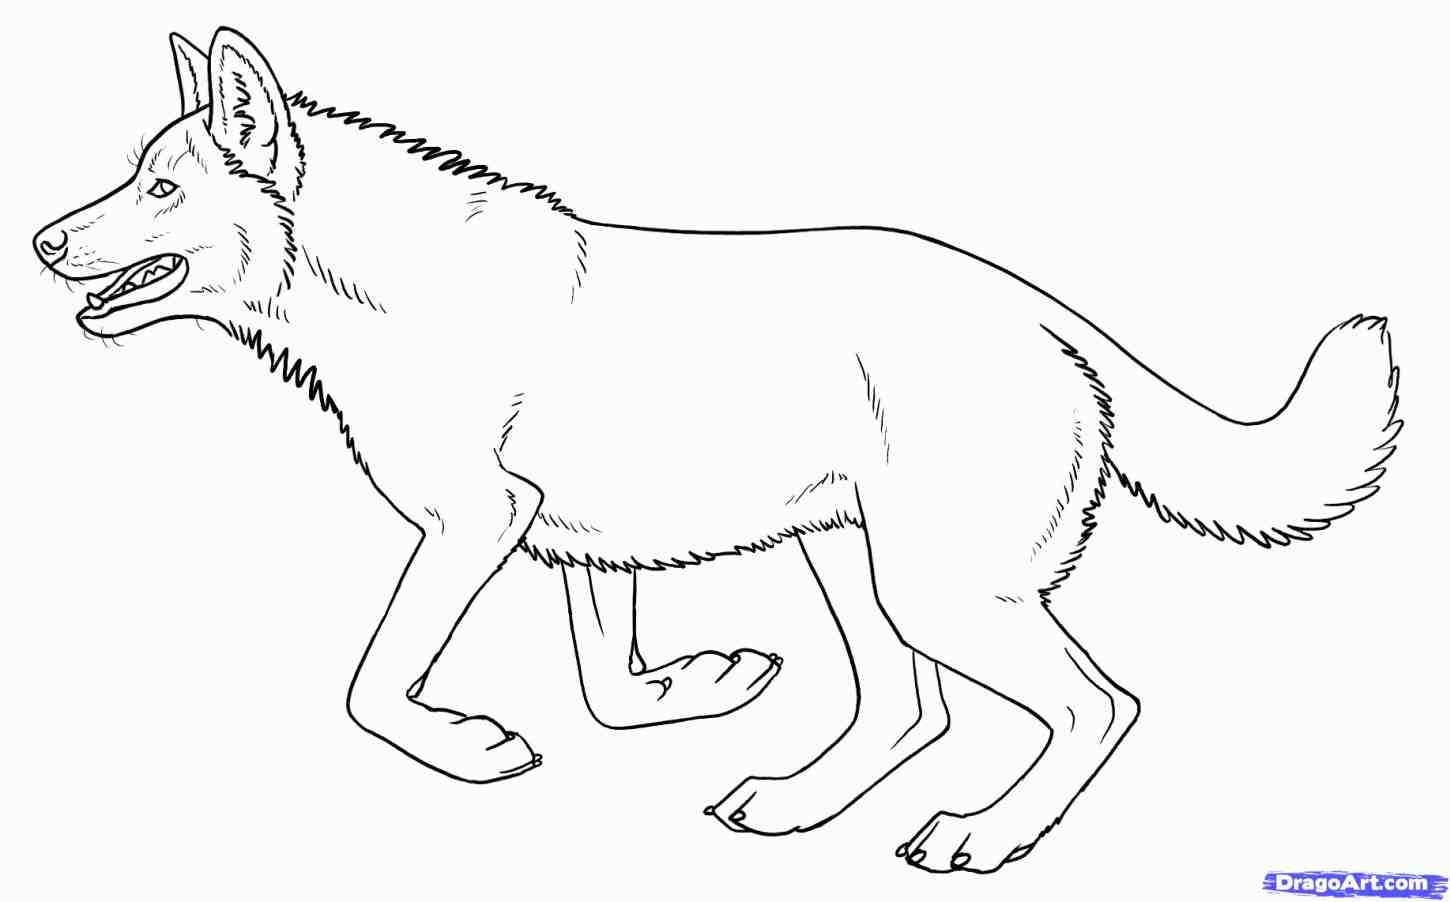 1450x902 How To Draw An American Pitbull Terrier. Apbt And Ambully Pitbulls